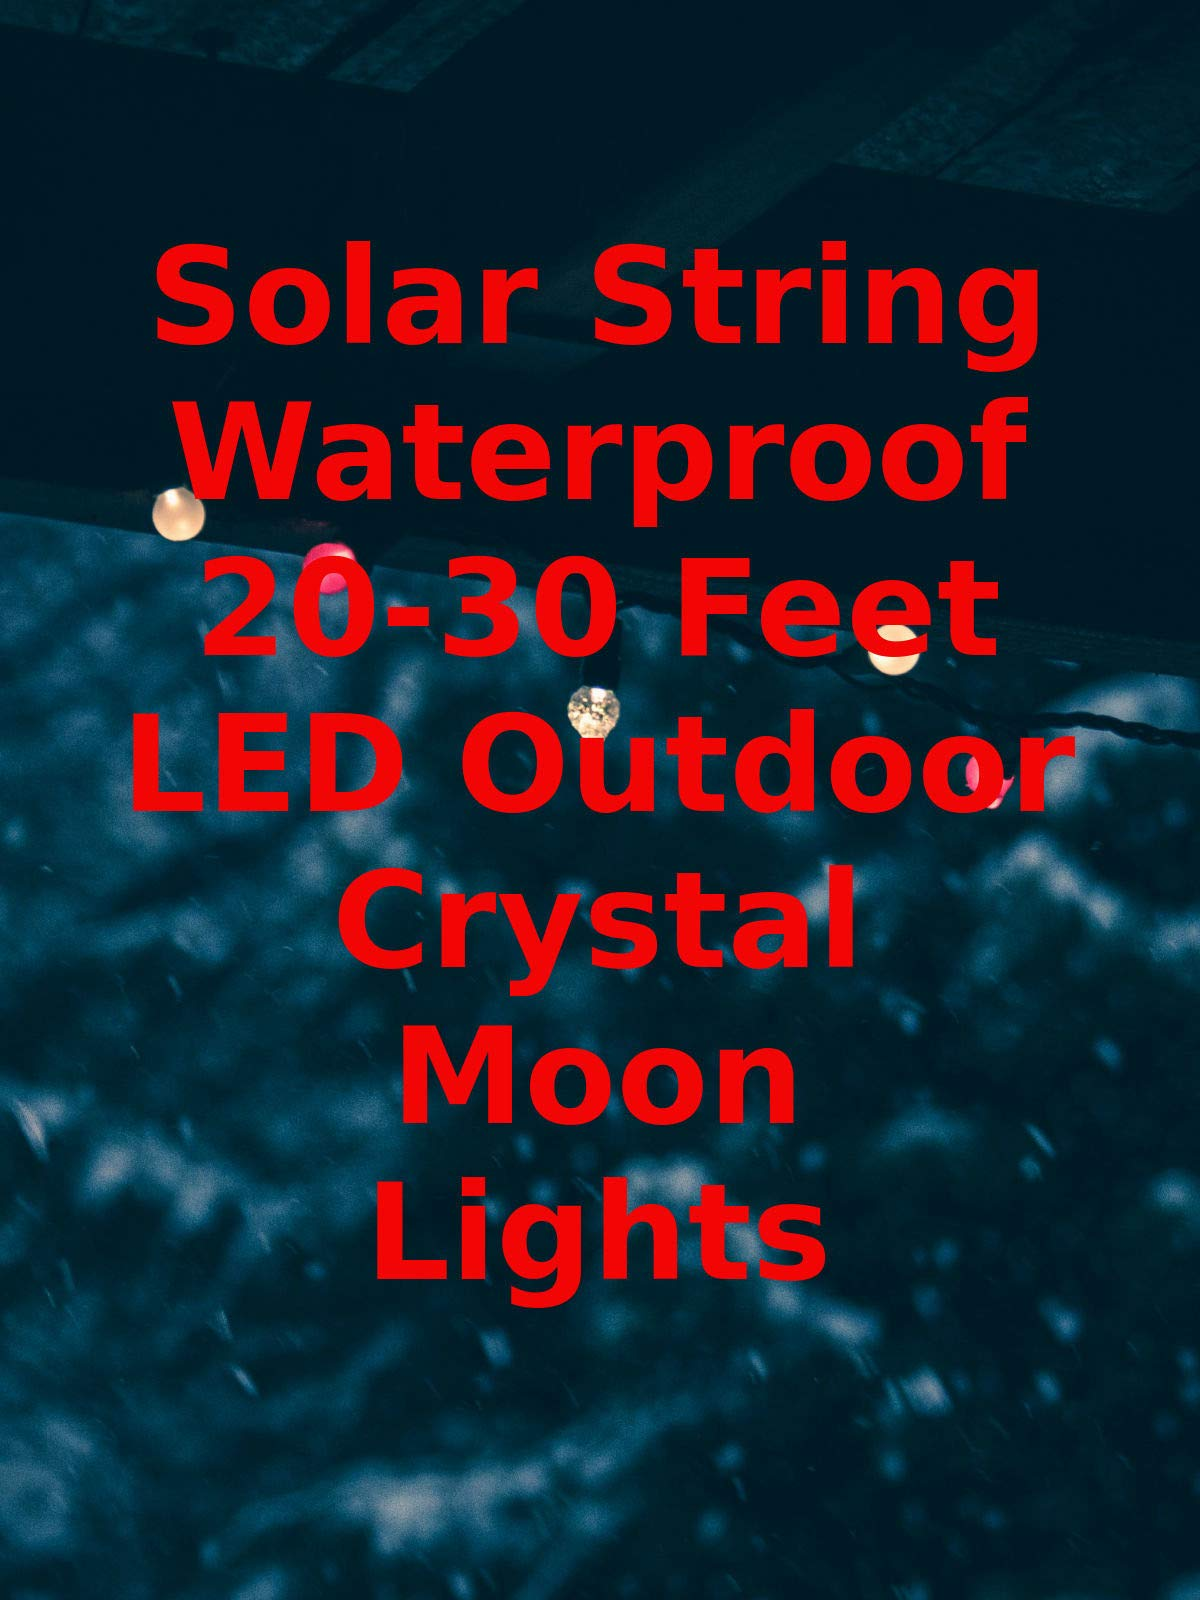 Review: Solar String Waterproof 20-30 Feet LED Outdoor Crystal Moon Lights on Amazon Prime Video UK